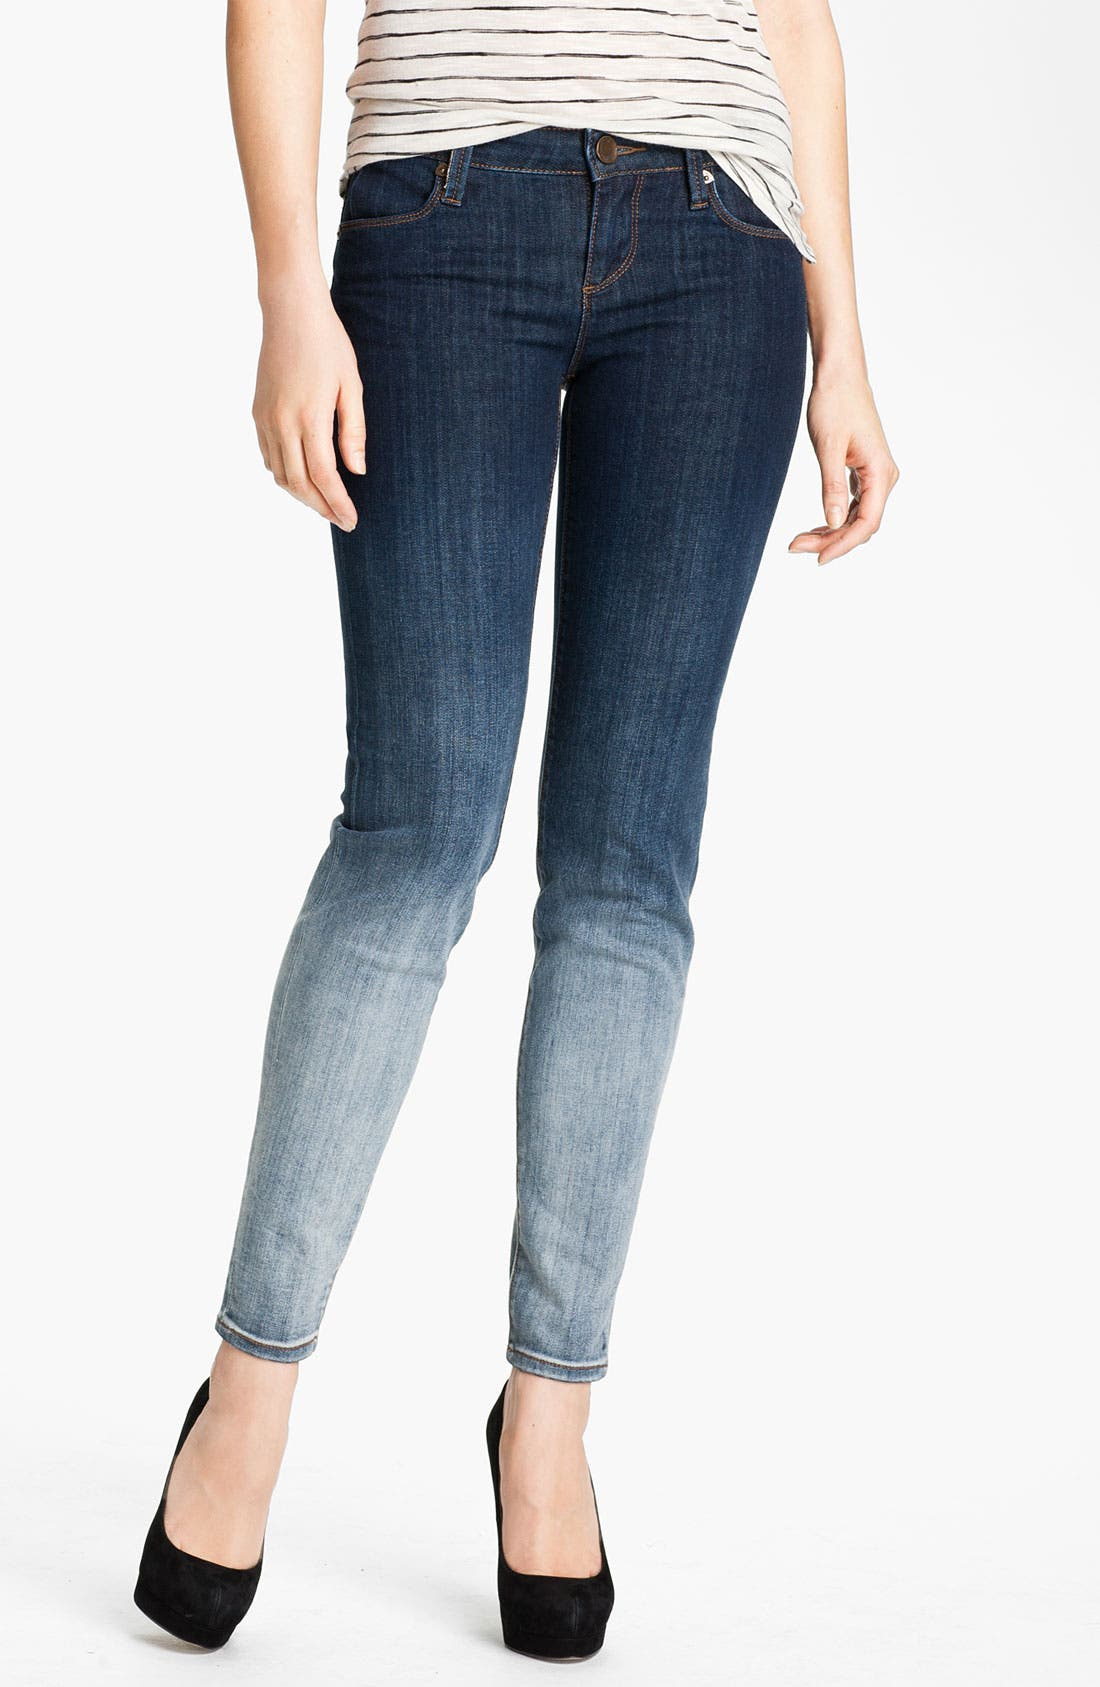 Alternate Image 1 Selected - KUT from the Kloth 'Jennifer' Skinny Jeans (Amazing) (Online Exclusive)